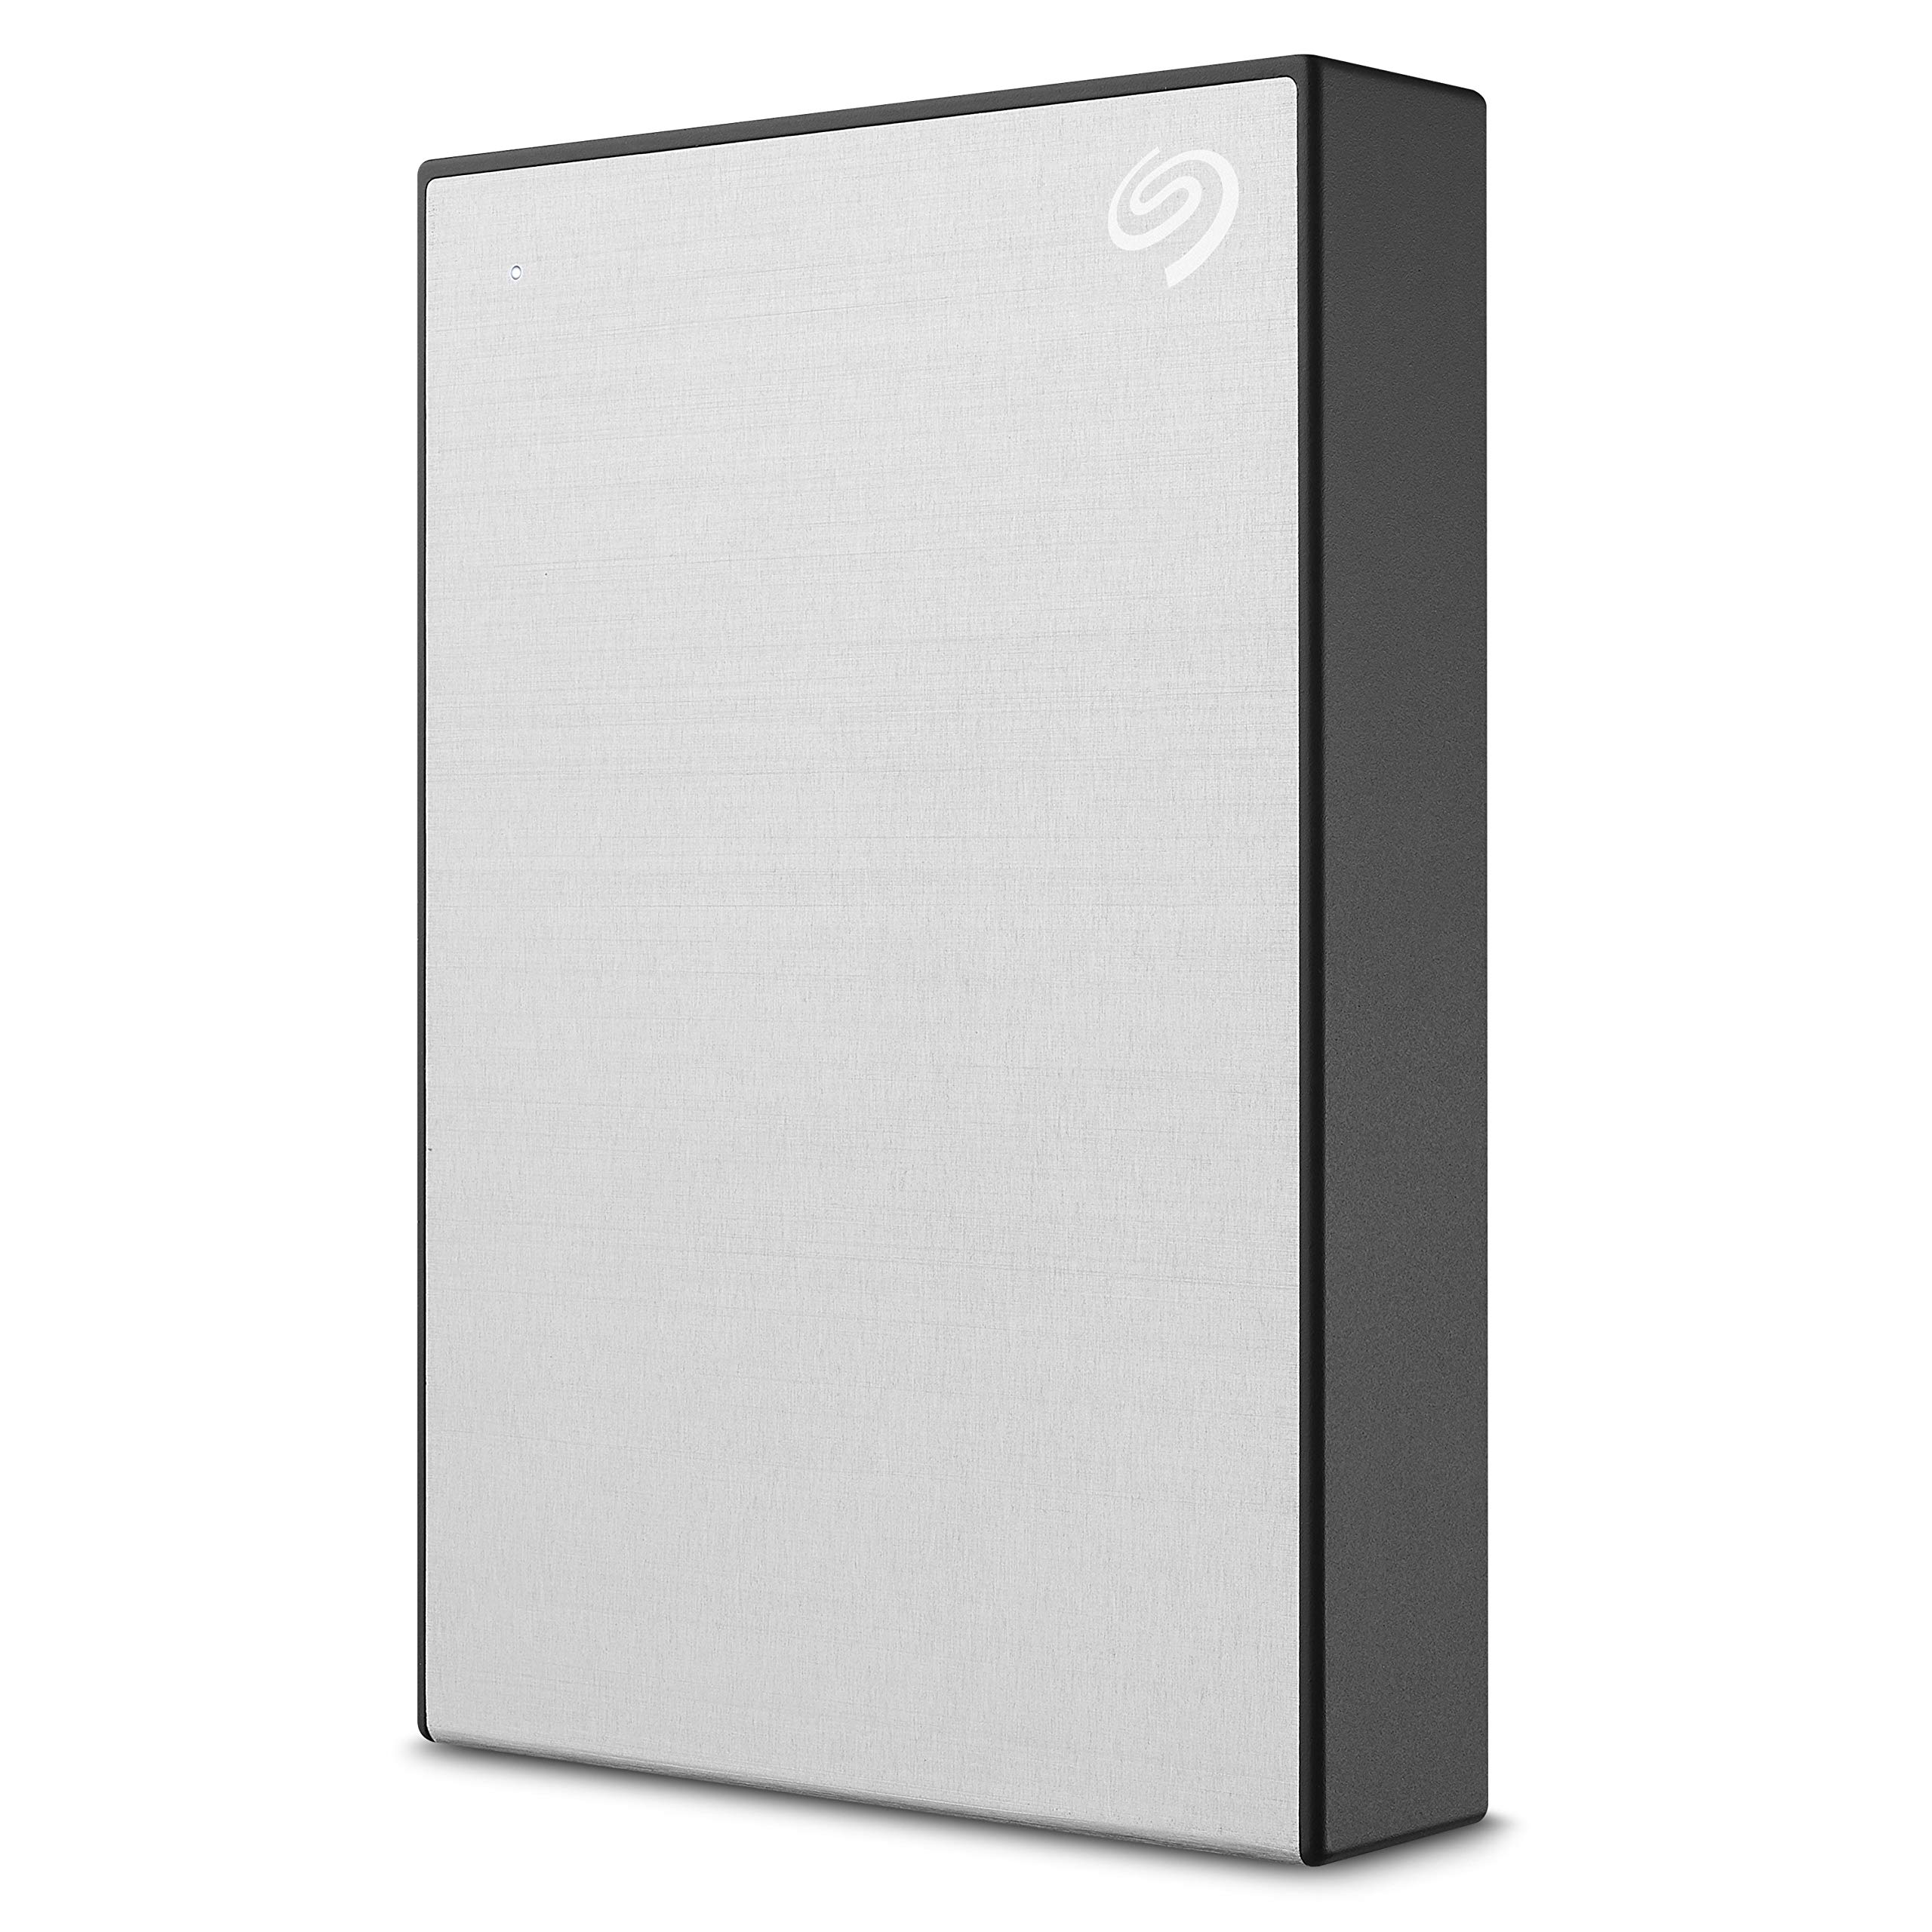 Seagate 5TB Backup Plus Portable High-Capacity External Hard Drive + 1Yr Myliocreate + 2MO Adobe CC Photography, Silver (STHP5000401)